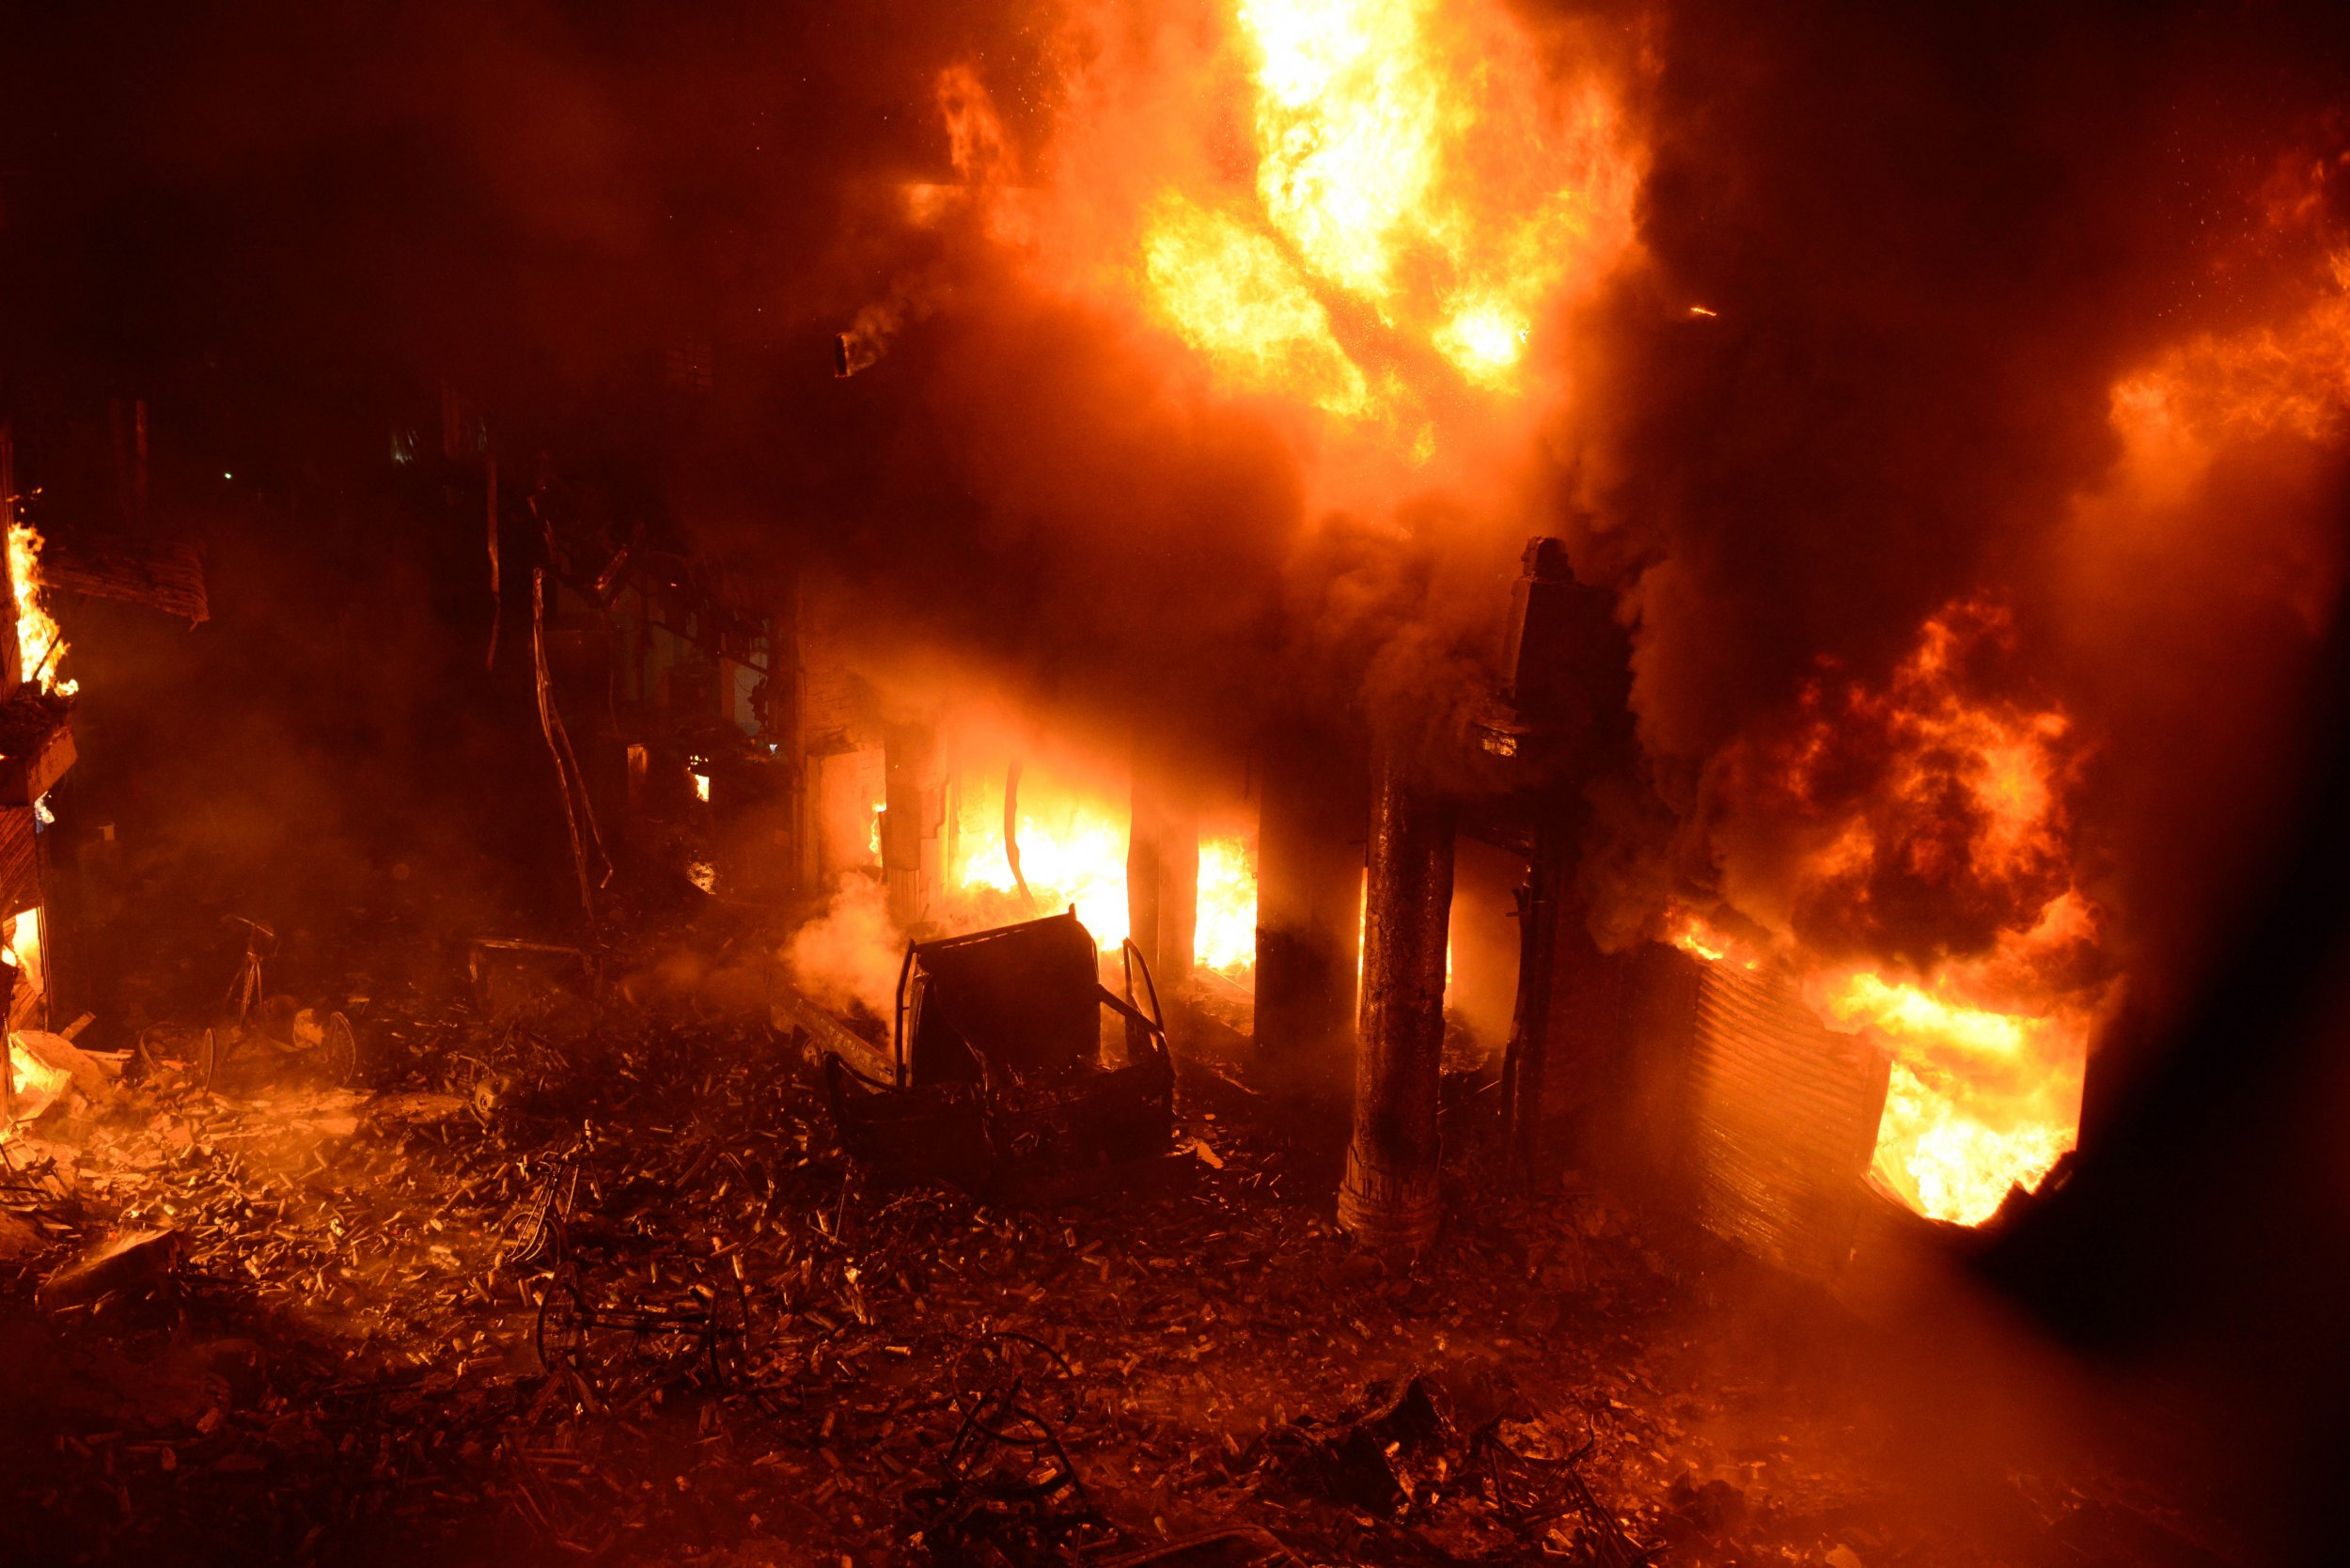 Dhaka fire Bangladesh apartments trapped warehouses